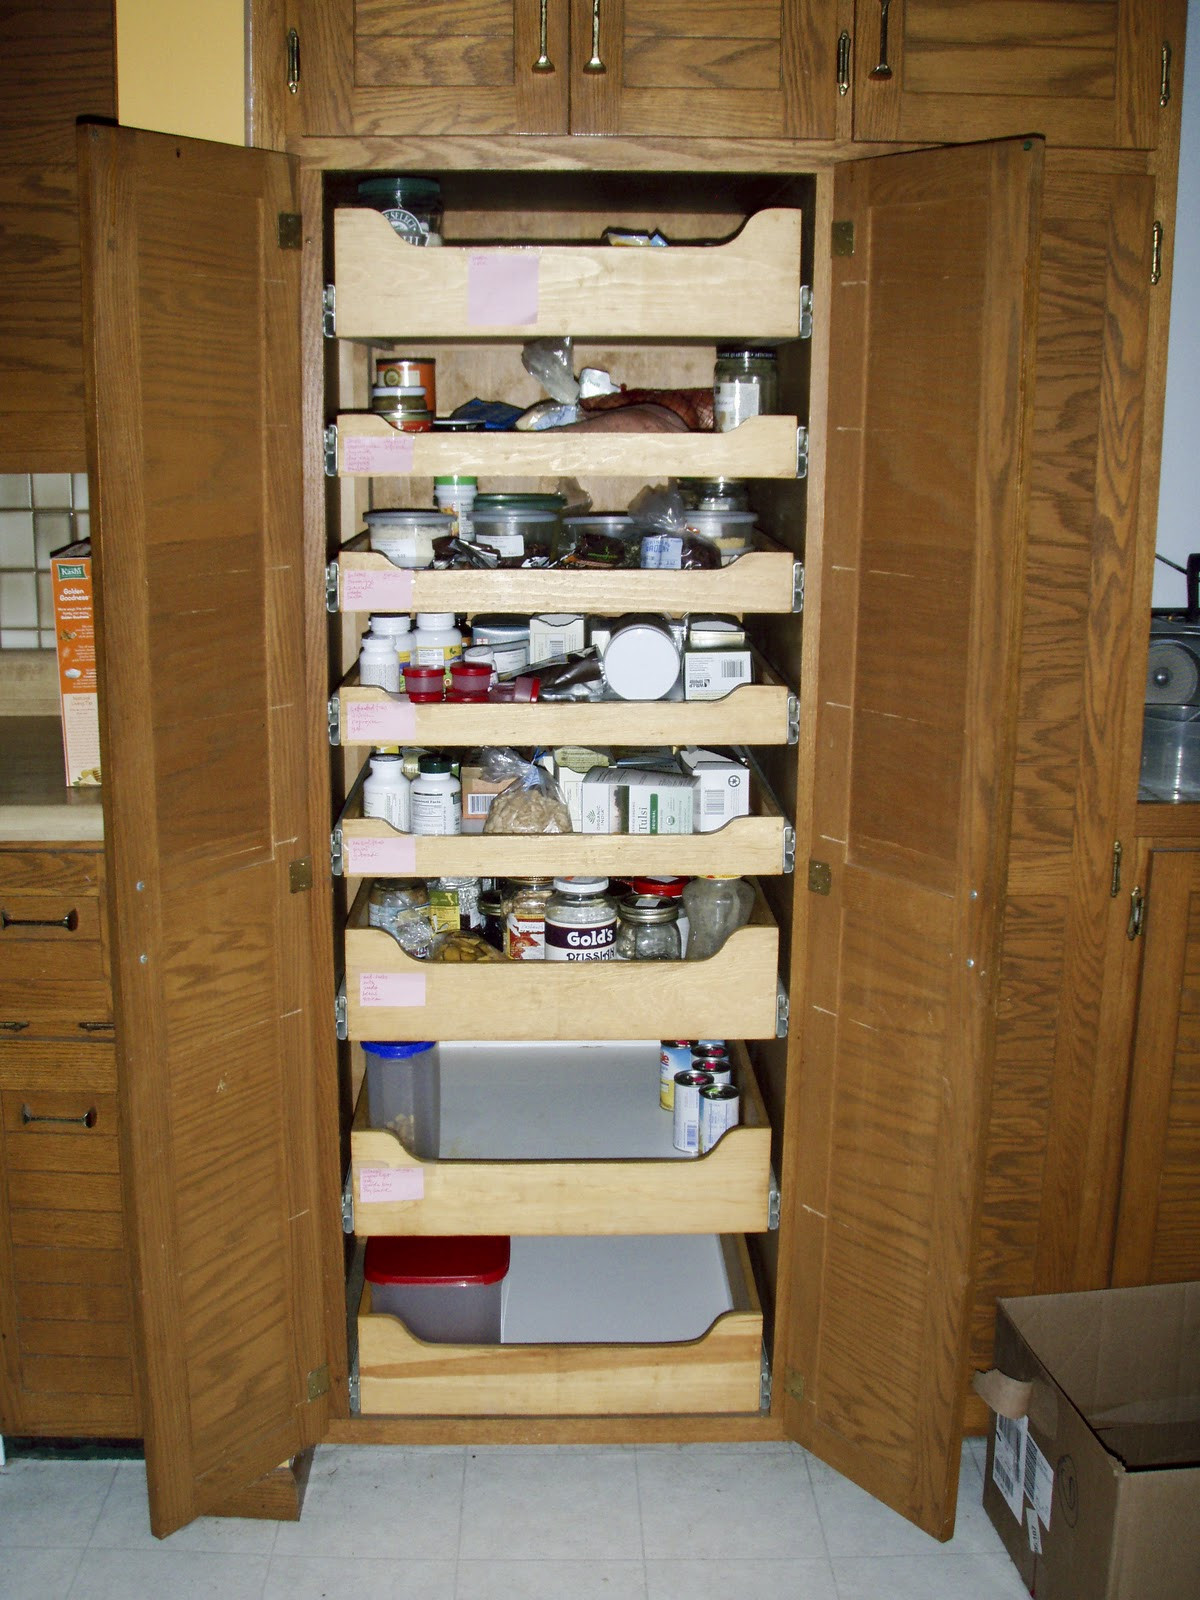 Best ideas about Pull Out Shelves For Pantry . Save or Pin Pull Out Shelves Now.